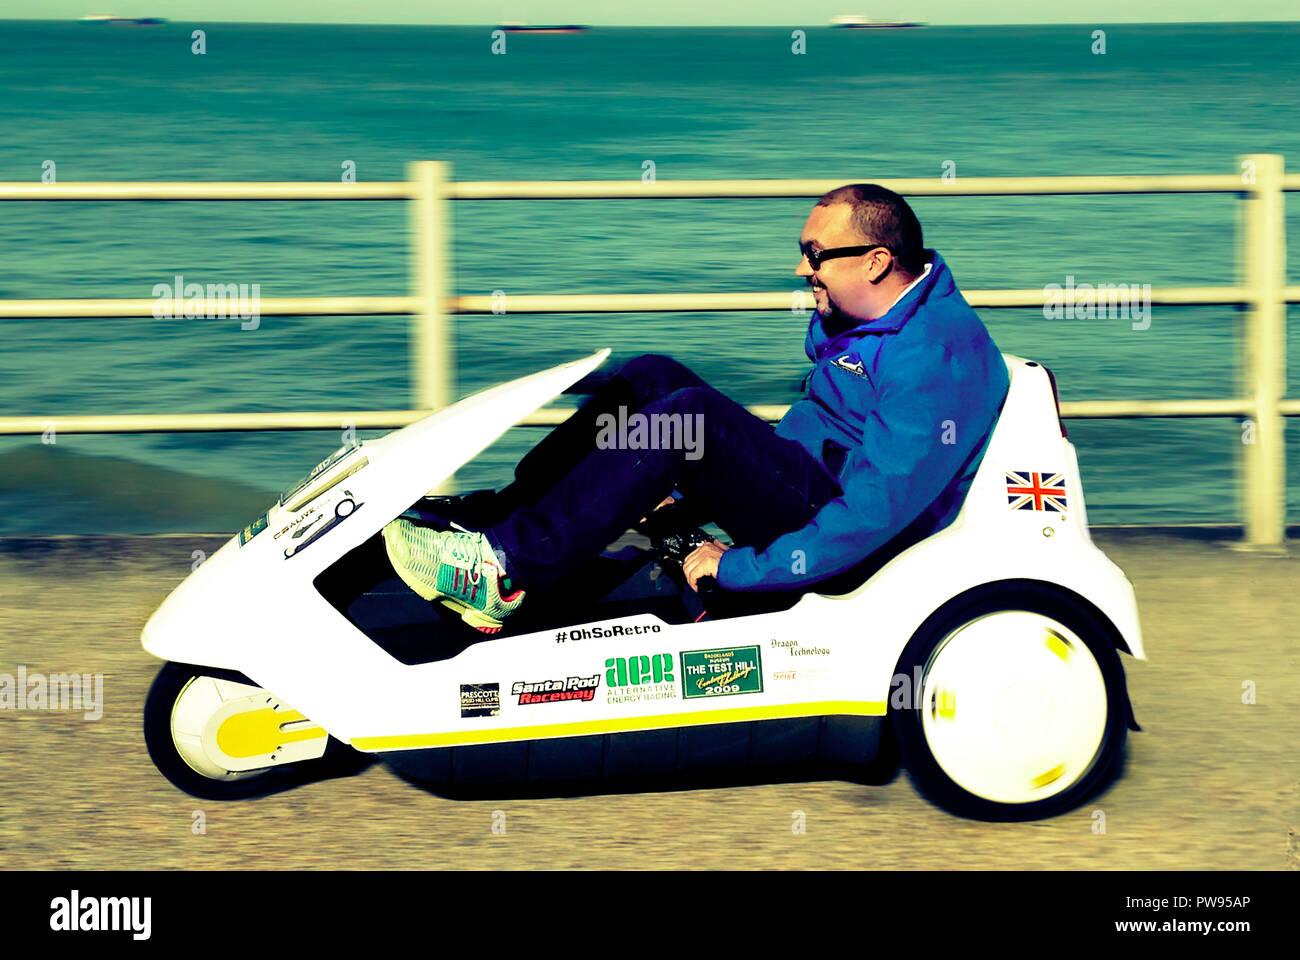 Margate, UK. 13th October 2018. Tourist driving a classic 1985 Sinclair C5 electric vehicle on the Viking trail in Margate Kent UK 13/10/2018 Credit: Martyn Goddard/Alamy Live News - Stock Image